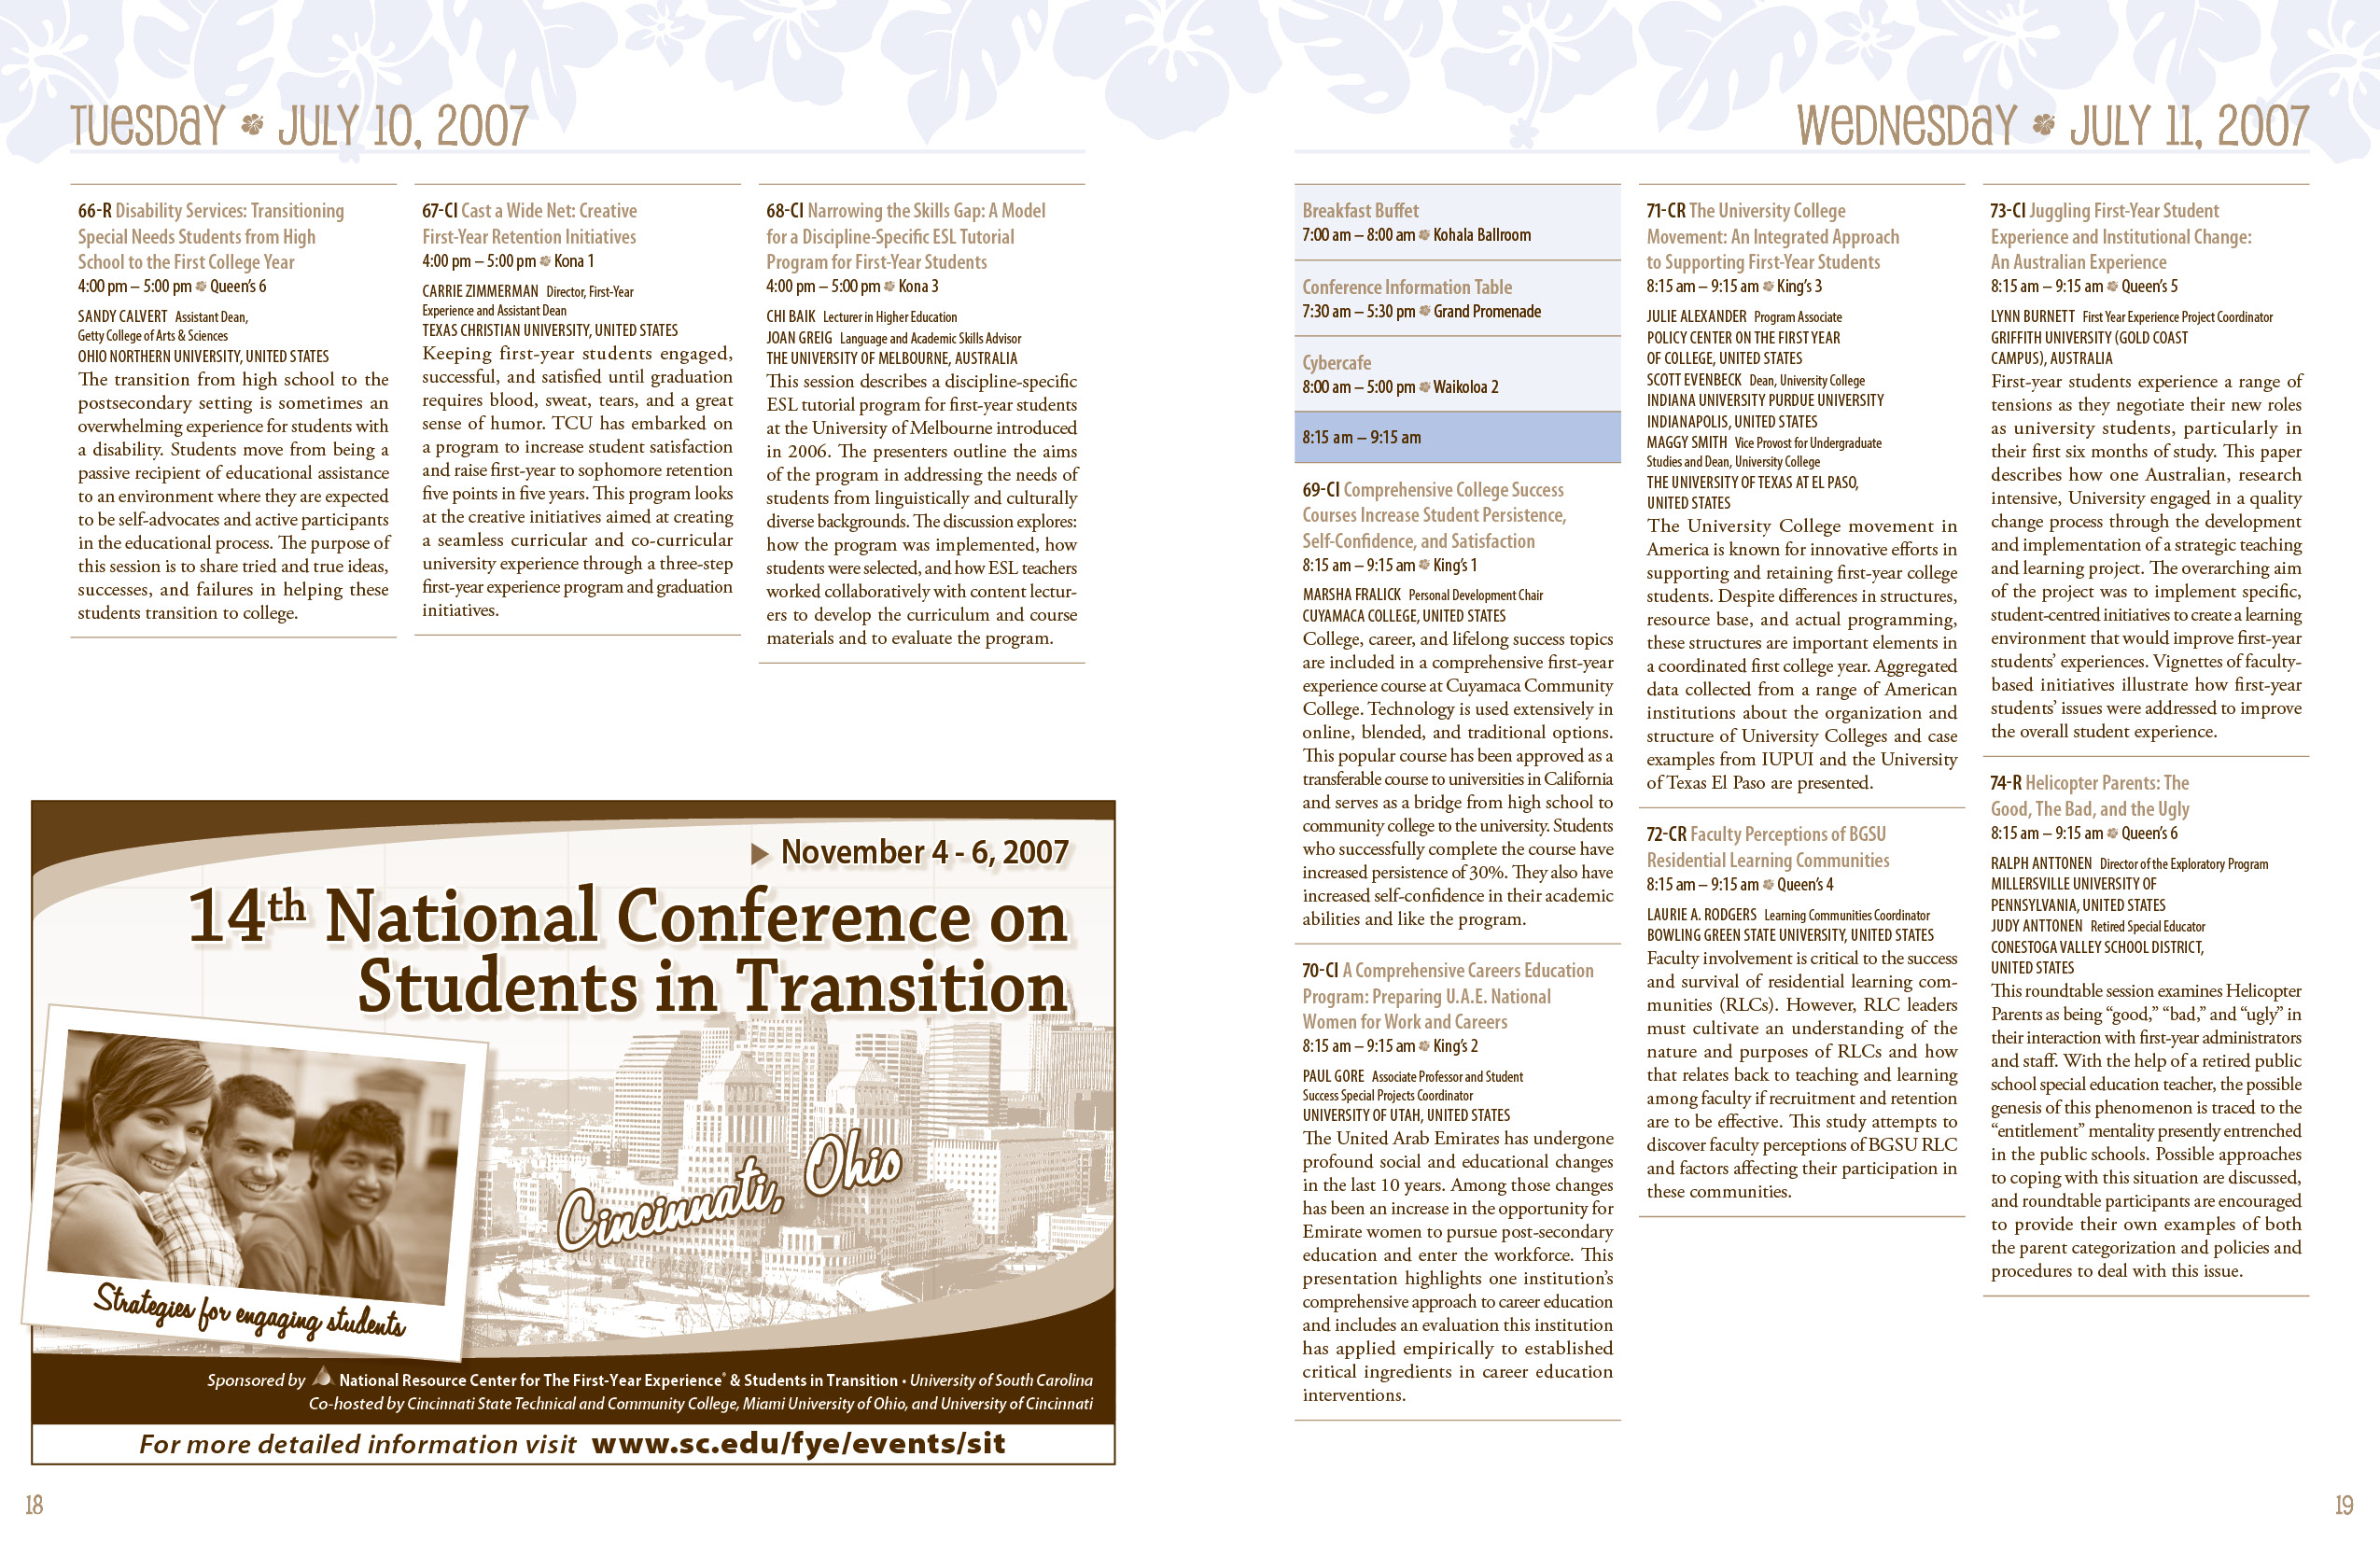 Design and layout for conference program booklet